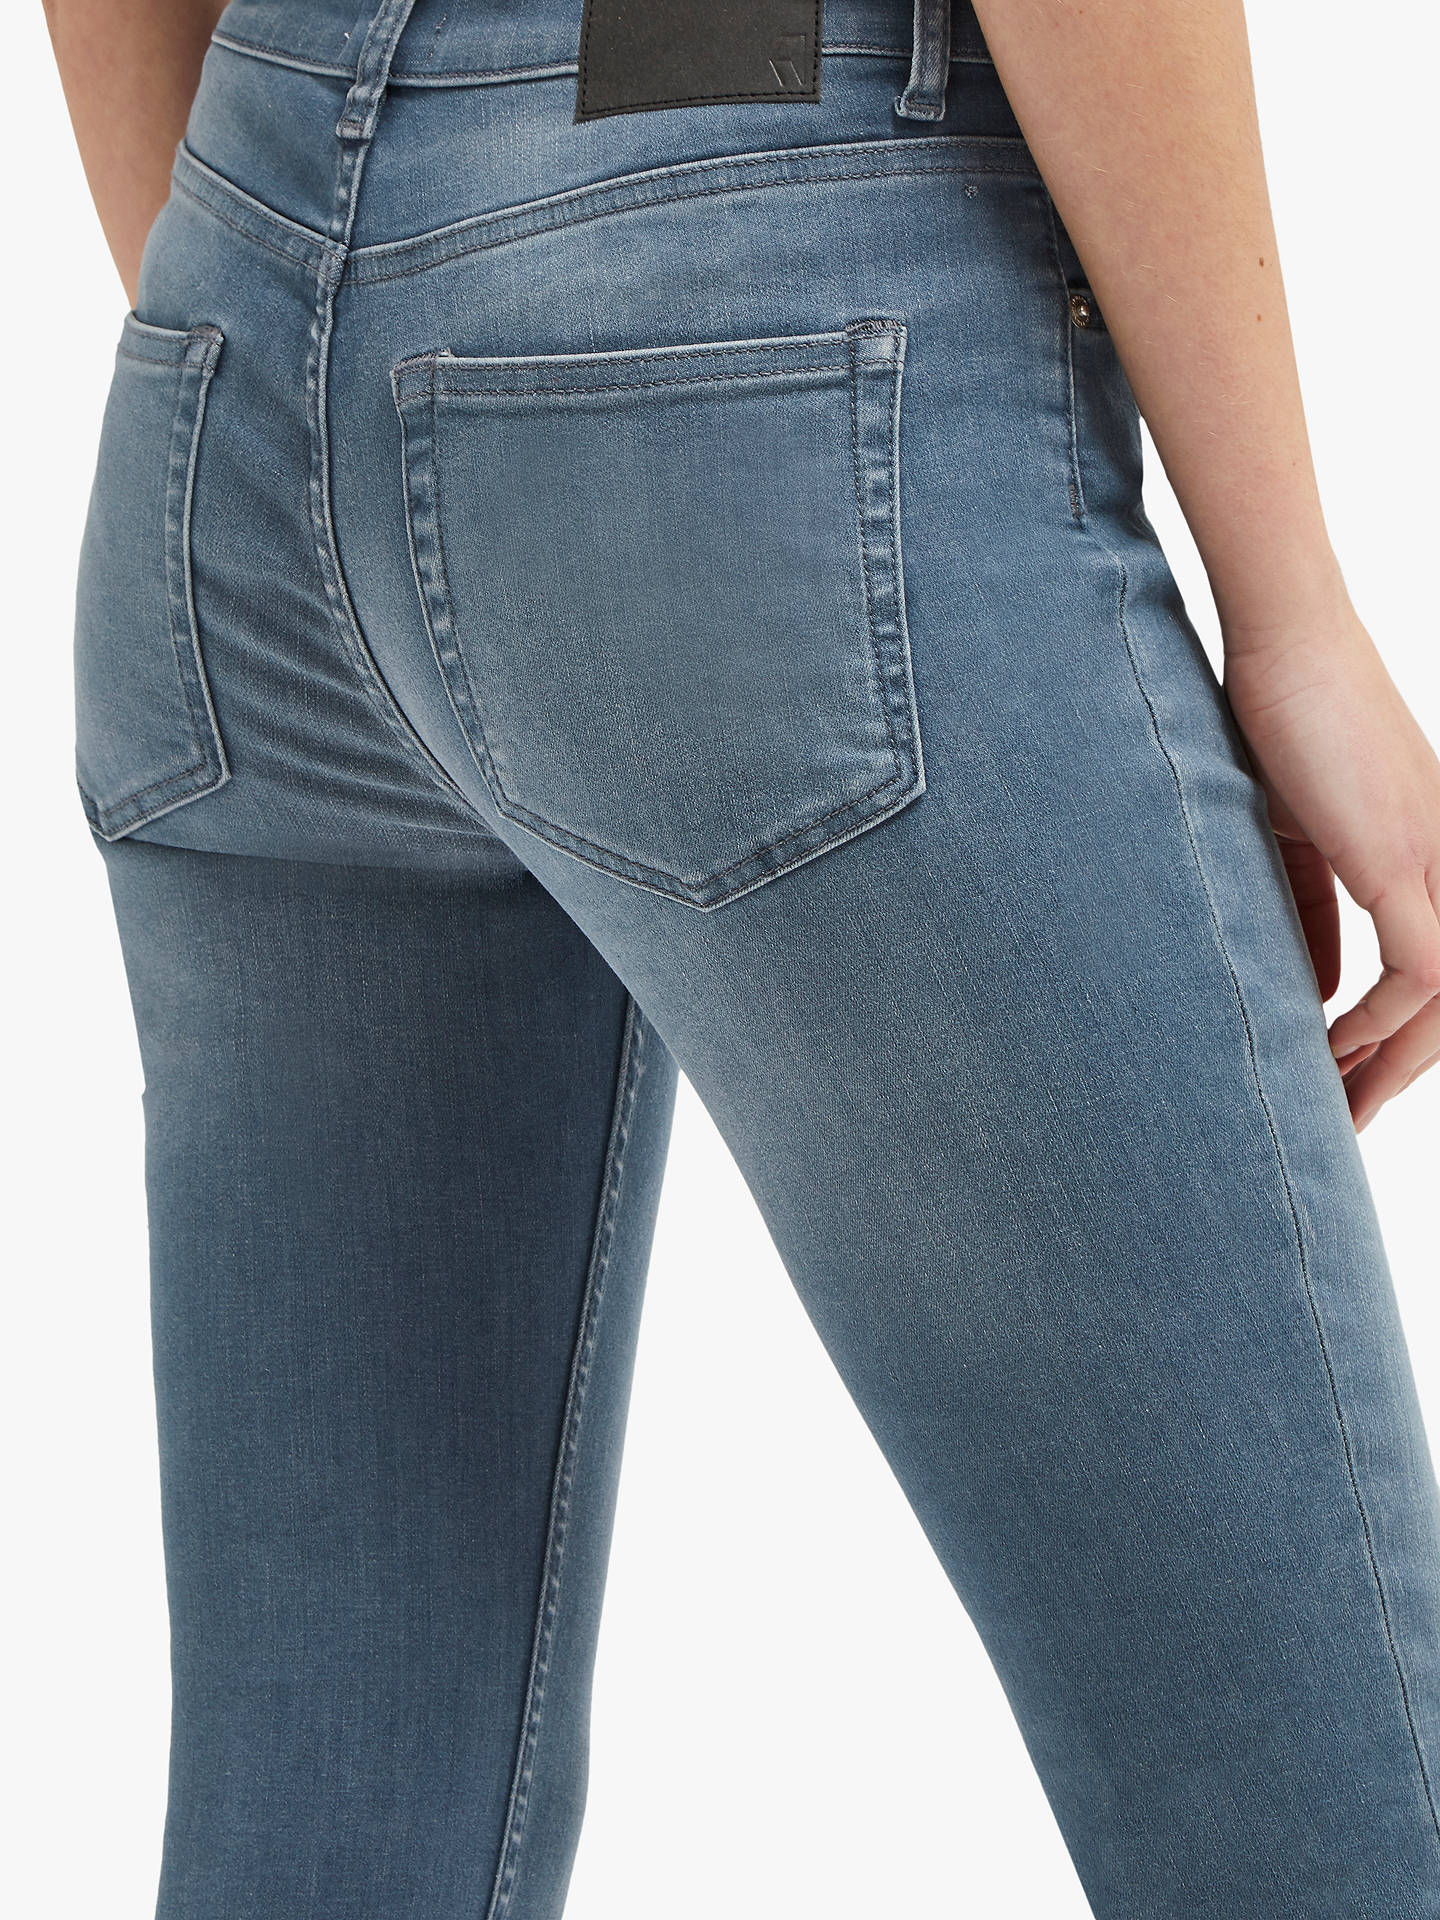 Buy French Connection Mid Rise Skinny Rebound Jeans, Blue/Grey, 6 Online at johnlewis.com